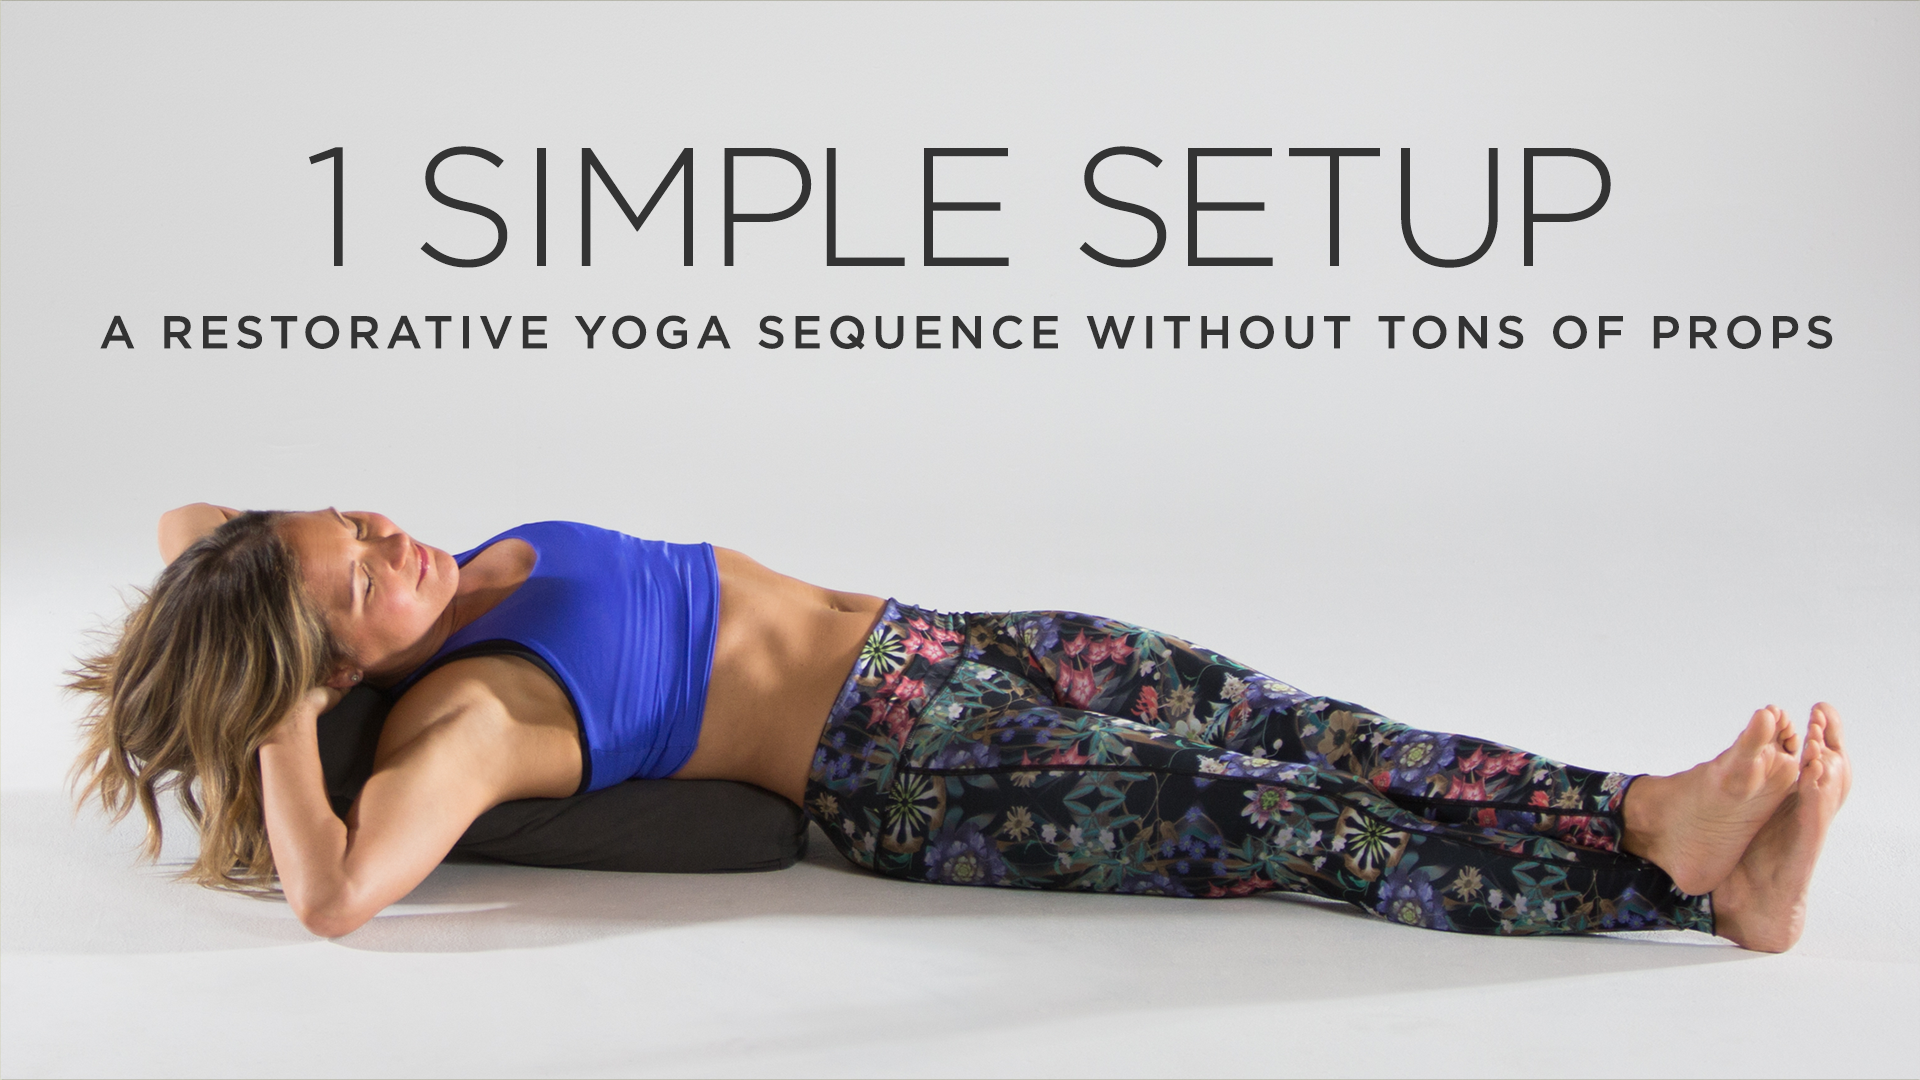 One Simple Setup A Restorative Yoga Sequence Without Tons Of Props